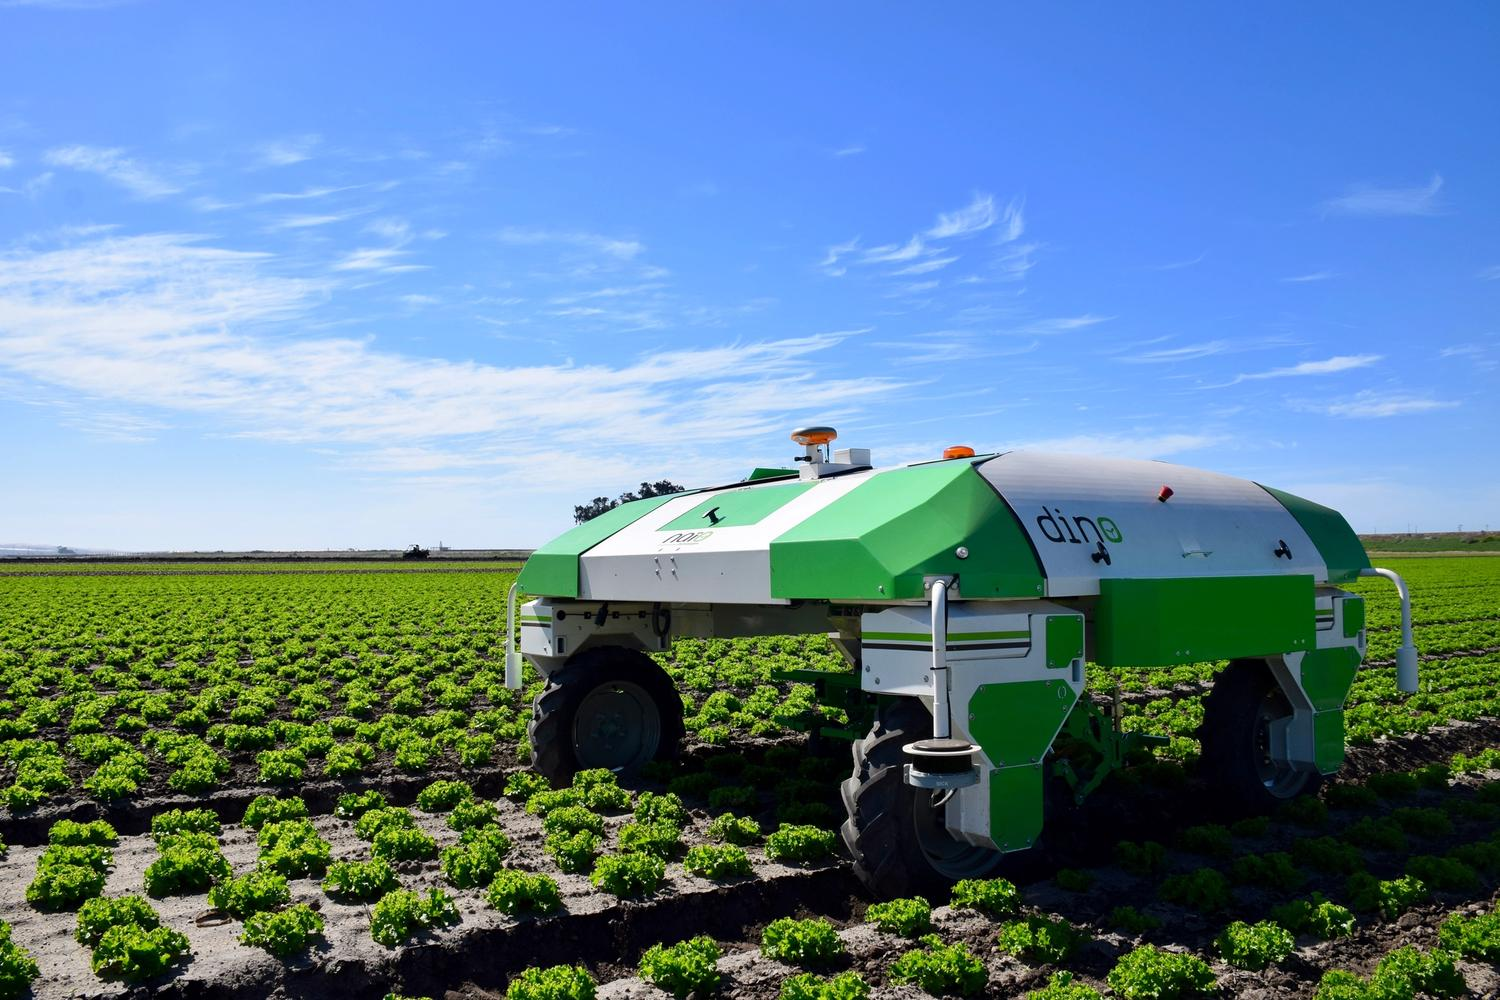 Dino weeding robot for vegetables, by Naïo Technologies